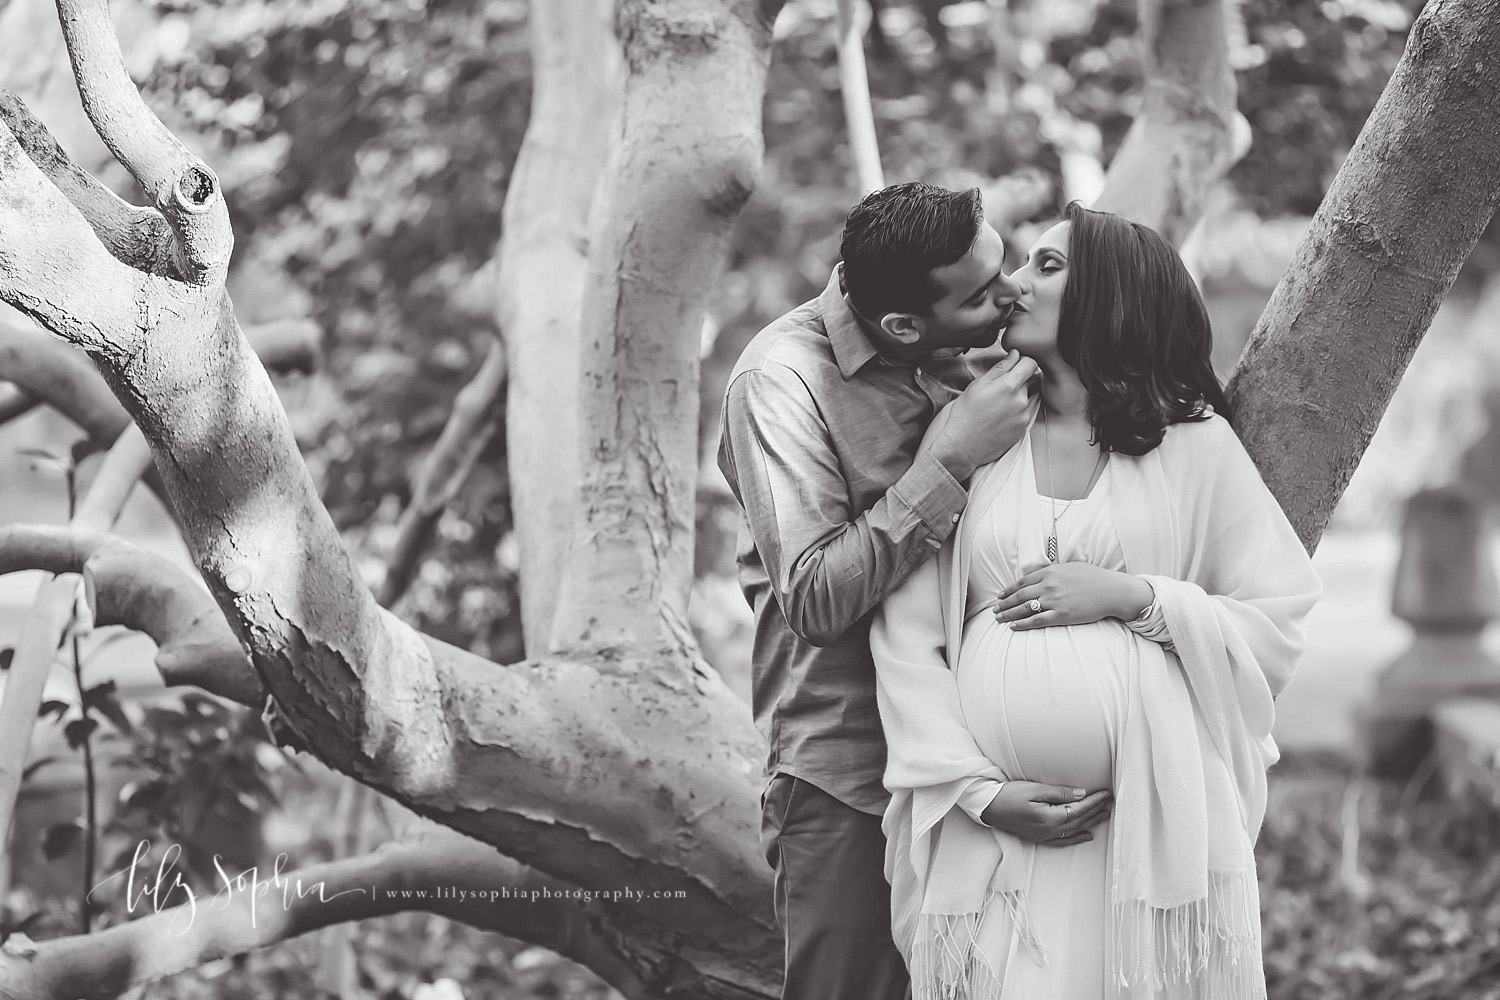 tree-gardens-atlanta-outdoors-sunset-black-and-white-indian-couple-expecting-baby-girl-pregnancy-maternity-photographer-atlanta-georgia-buckhead-intown-virginia-highlands-grant-park-natural-light-photography